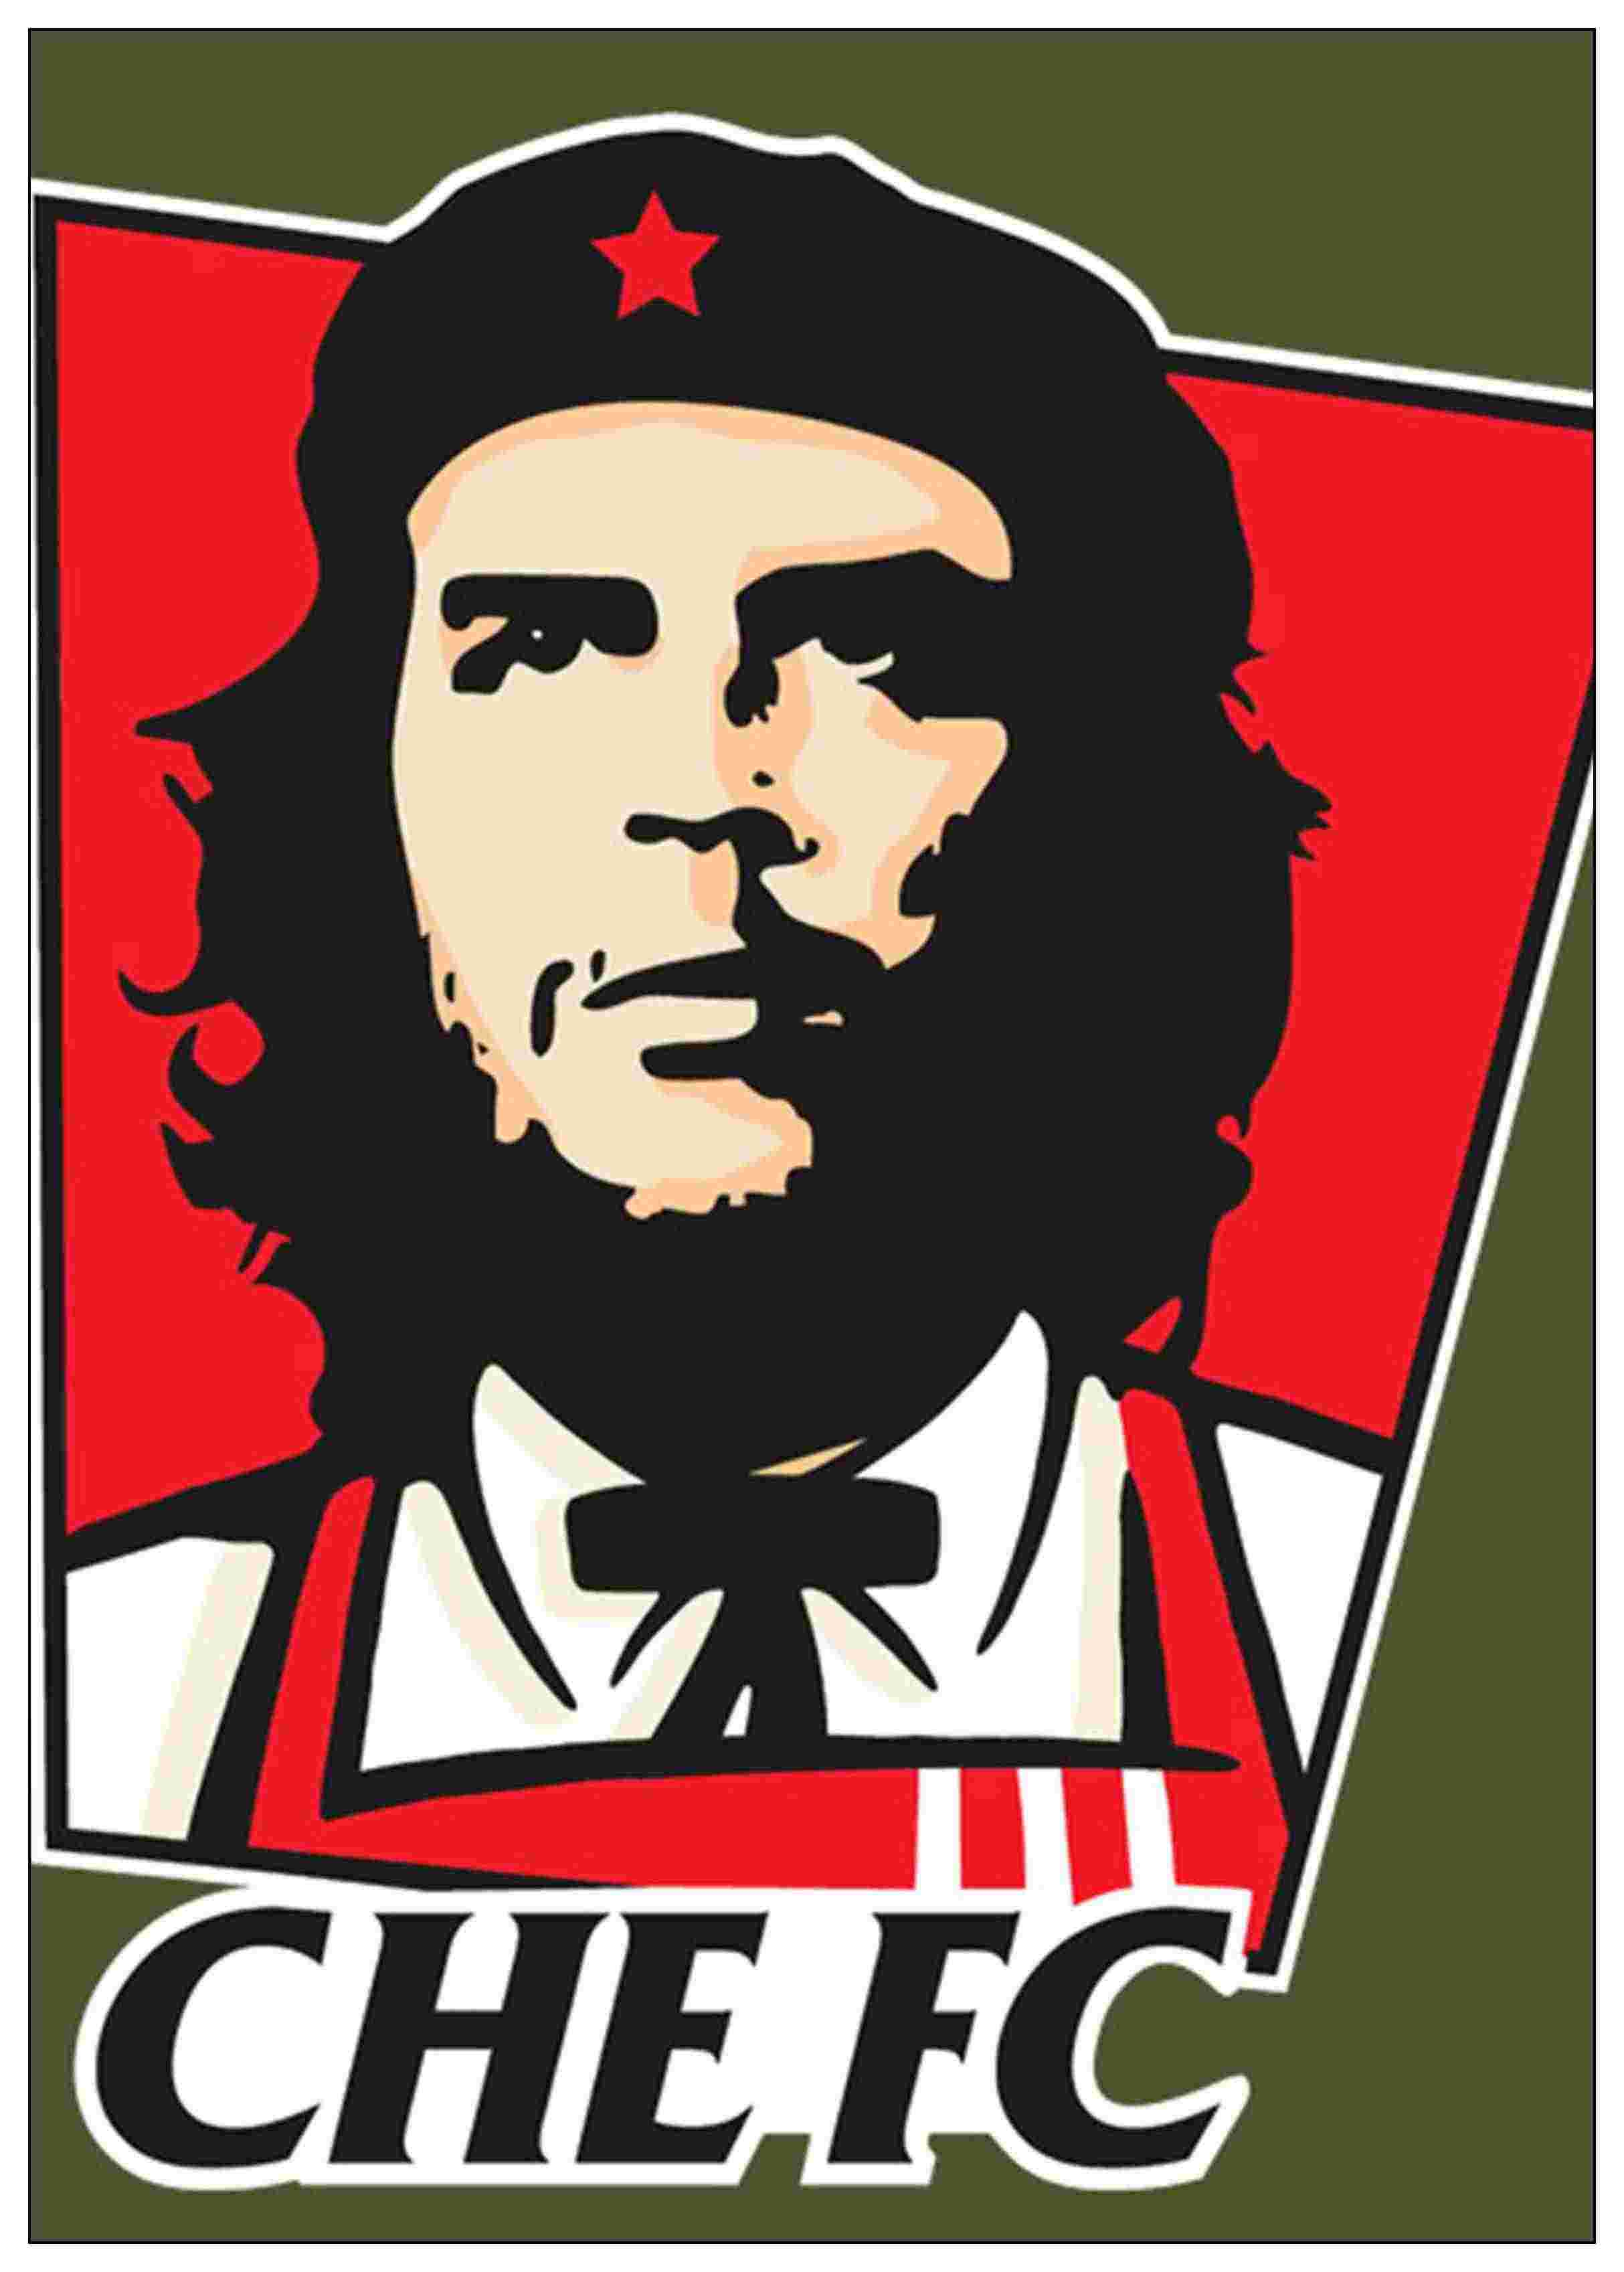 ... Che Guevara Character Posters Nostalgic Old Home Room Bar Decor High Quality Printing Wallpaper Modern Decoration ...